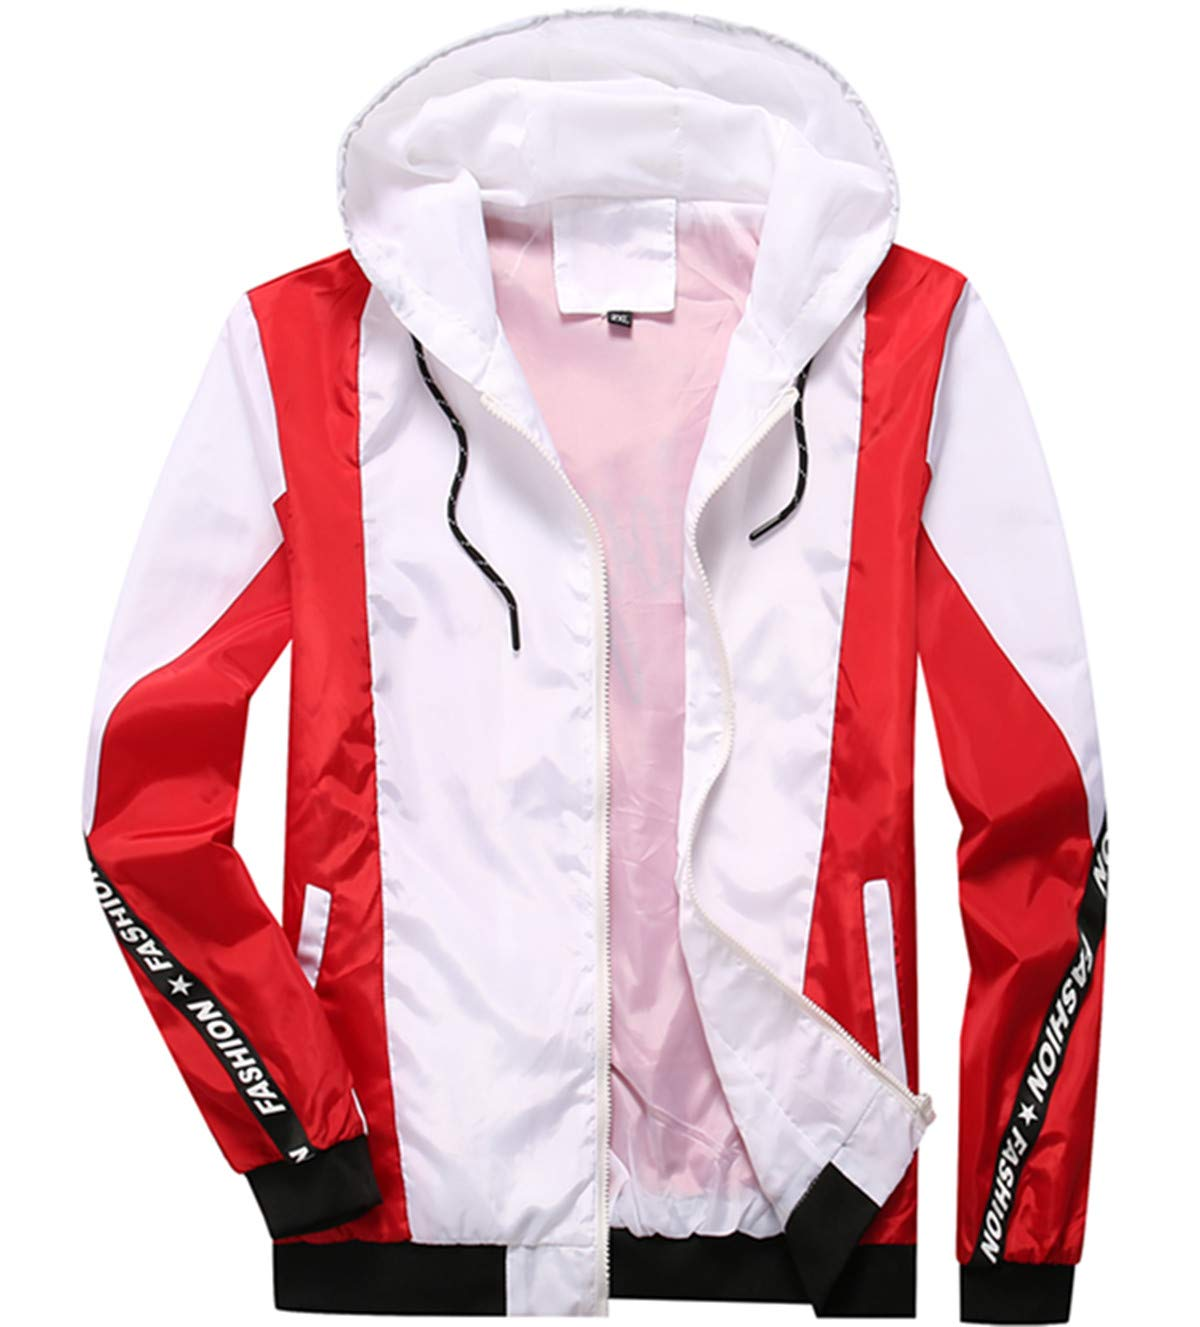 Homaok Men's Lightweight Breathable Jacket Small White and red by Homaok